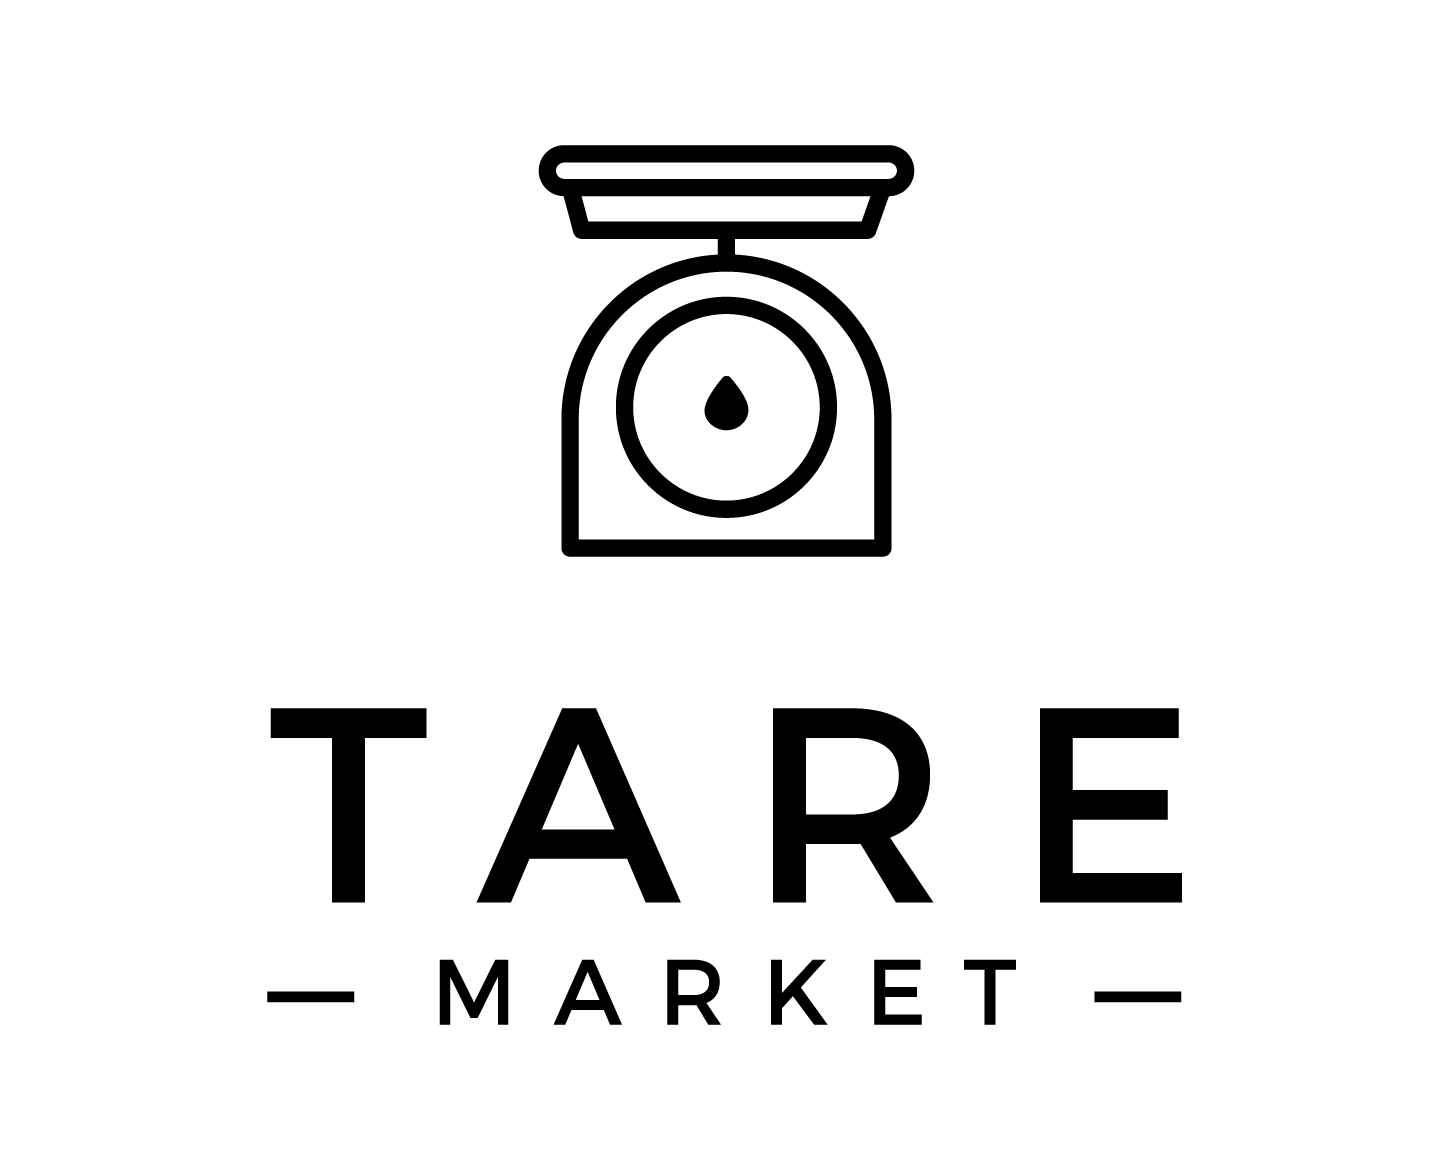 tare_16x20 (1).png